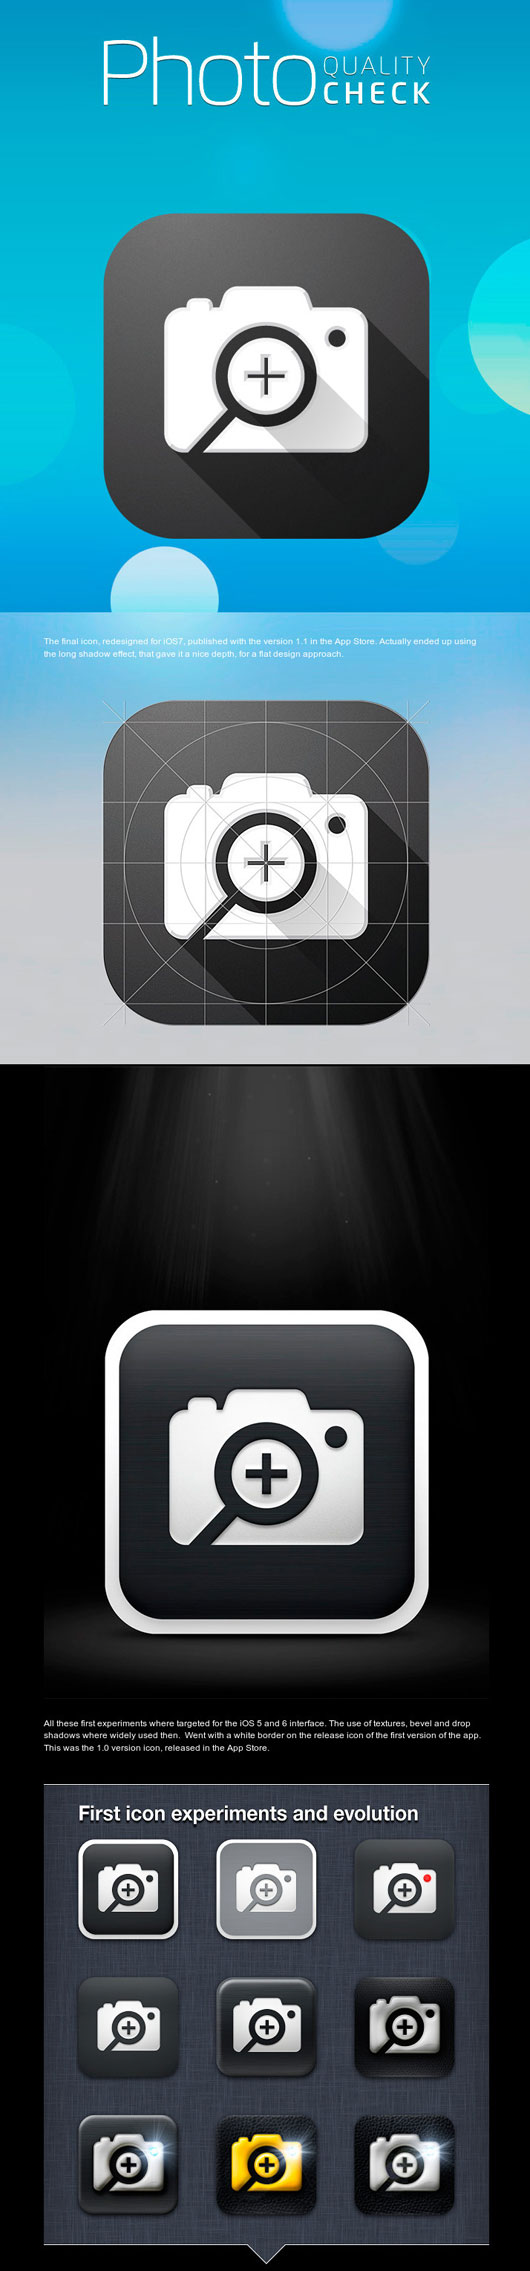 iOS App Icon Designs